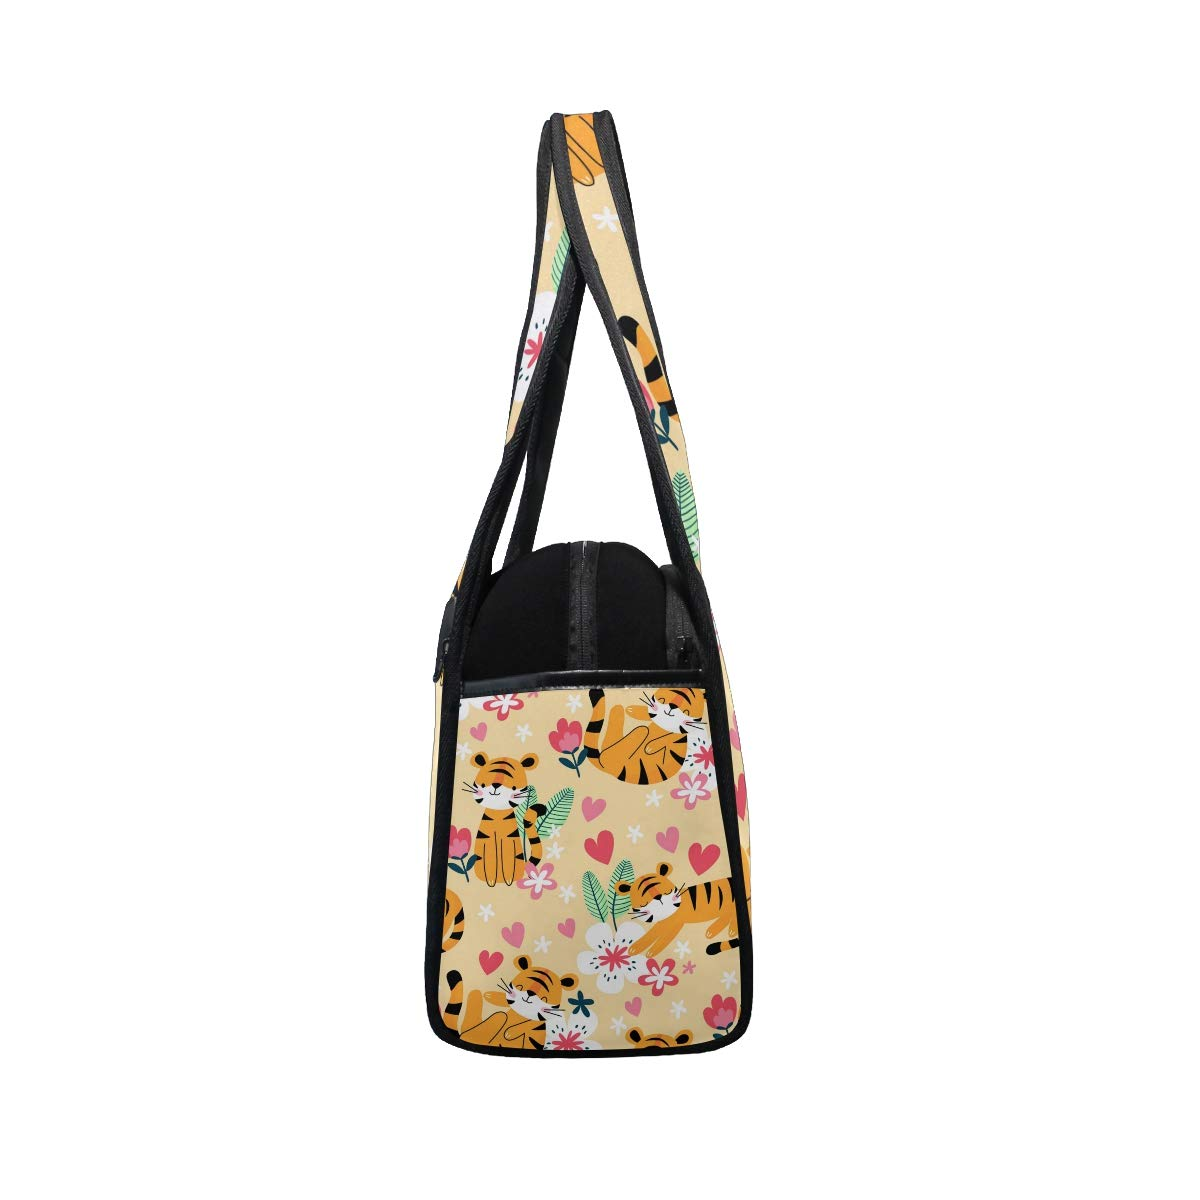 Cartoon Tiger With Floral Pattern Women Sports Gym Totes Bag Multi-Function Nylon Travel Shoulder Bag